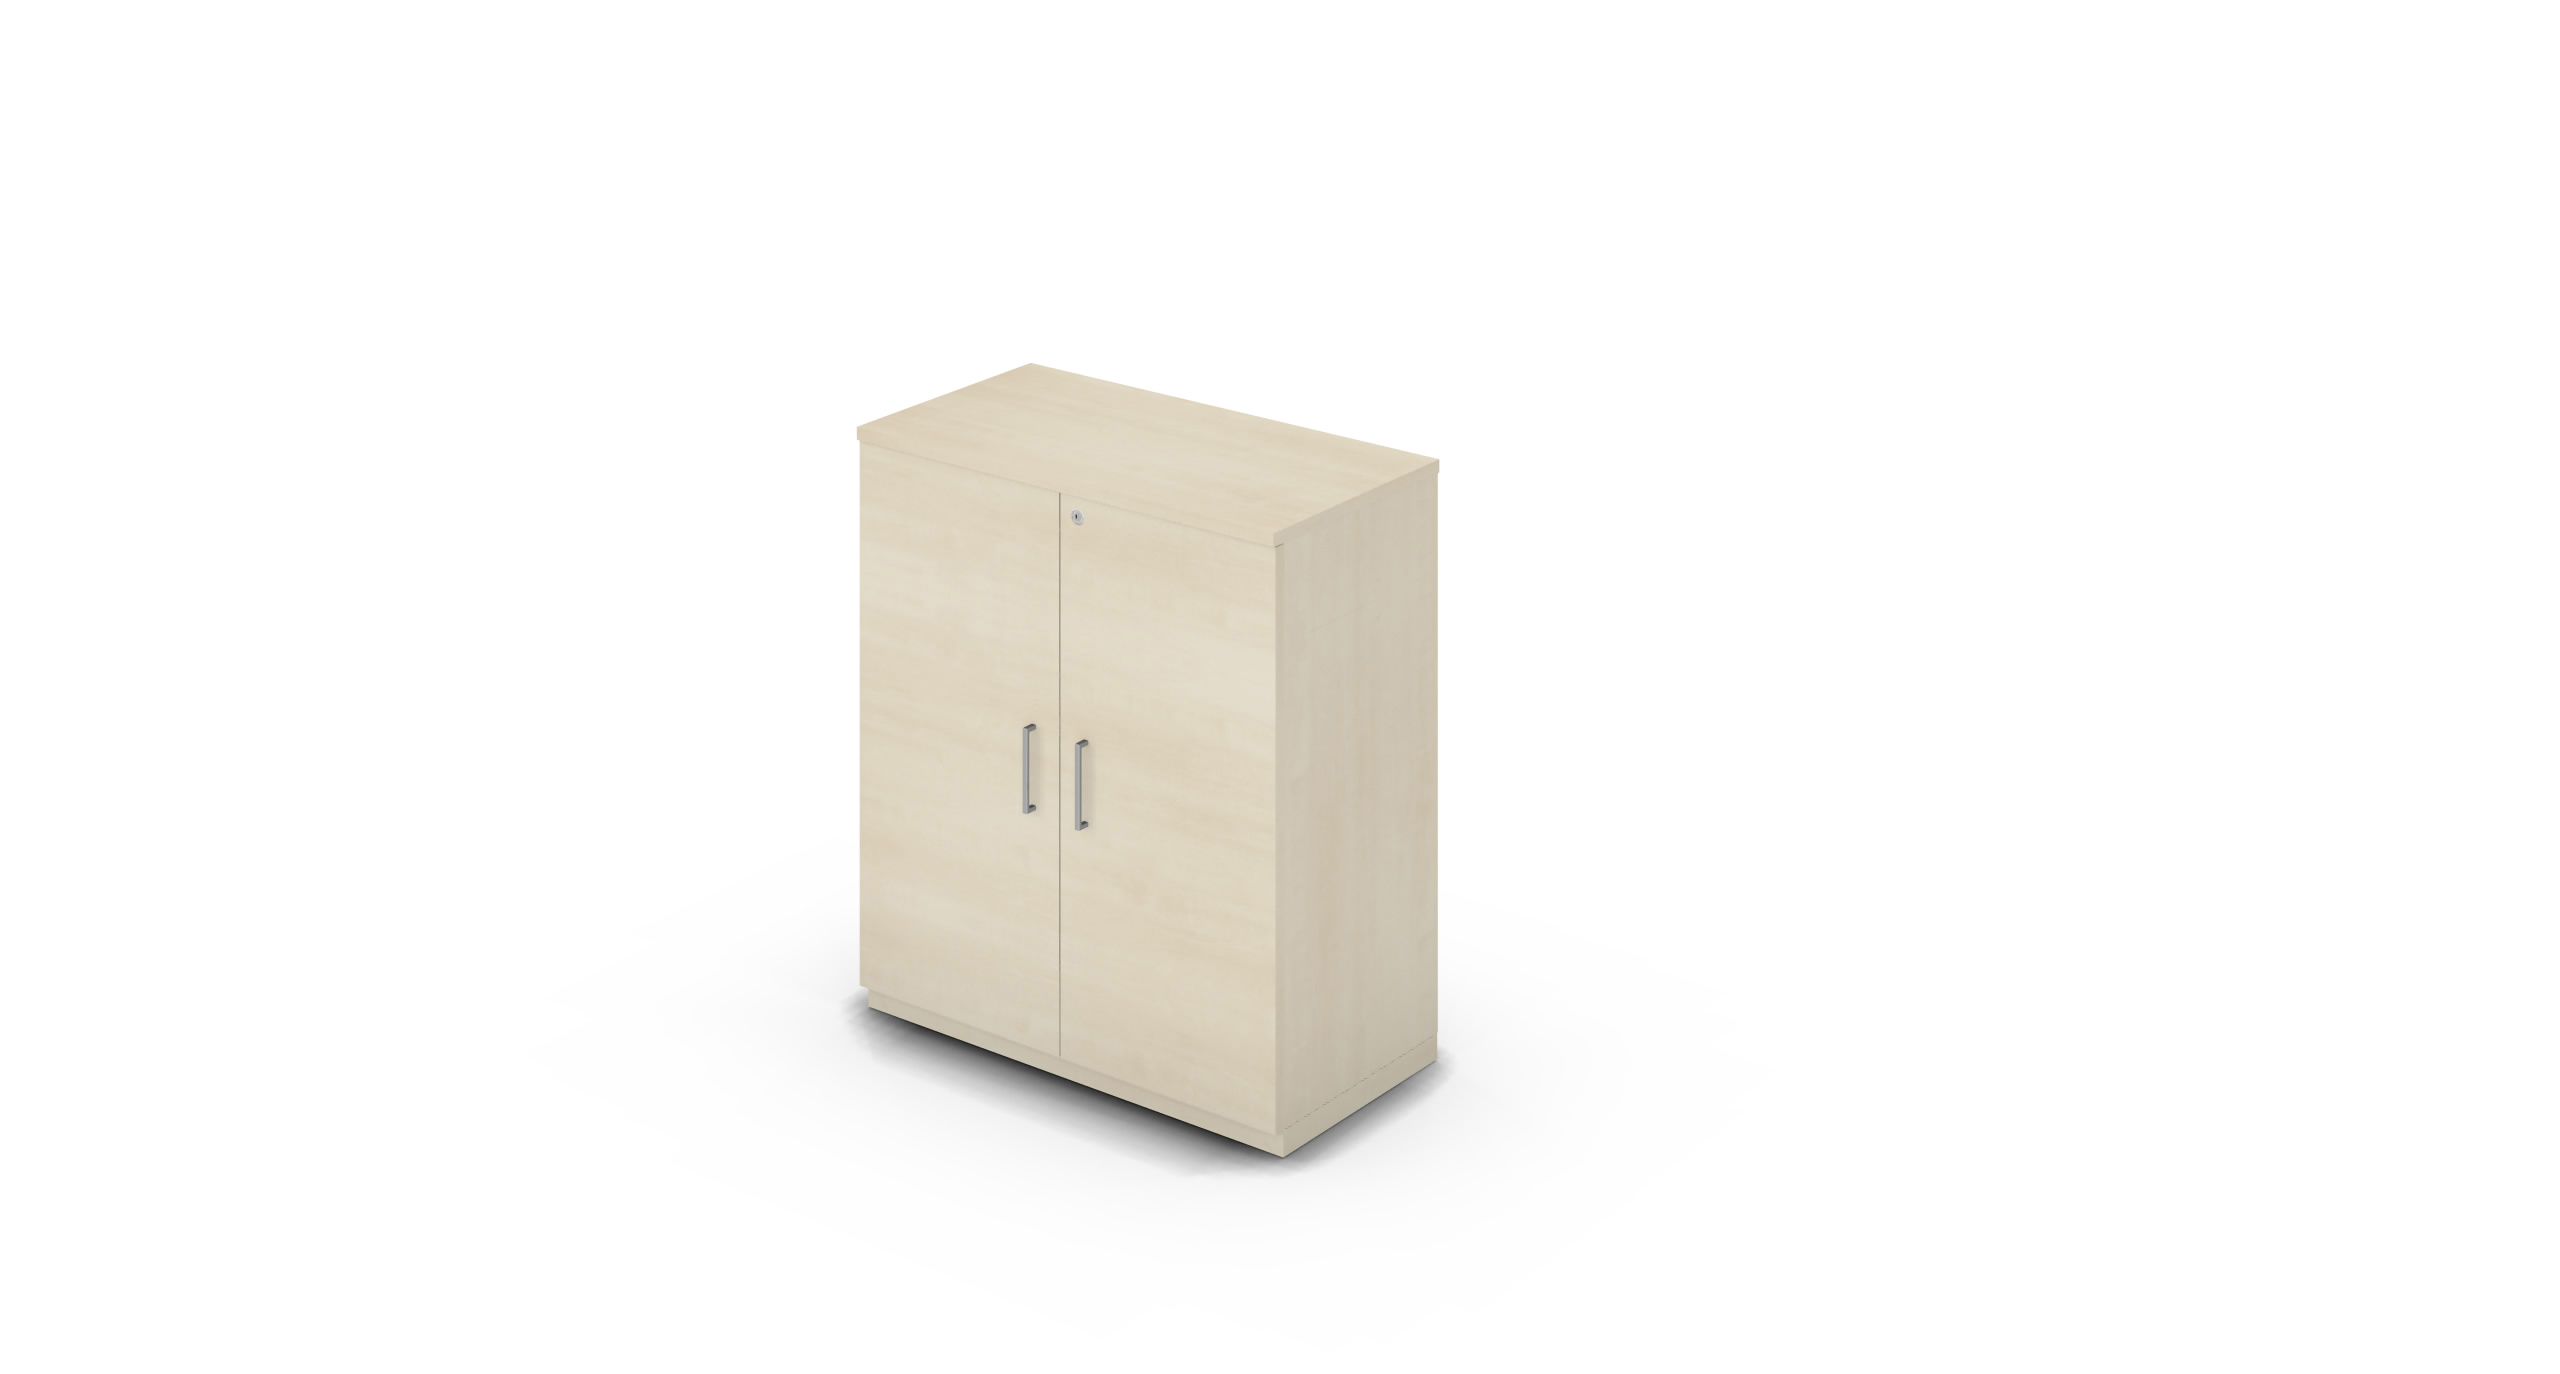 Cabinet_900x450x1125_HD_Maple_Bar_Square_WithCylinder